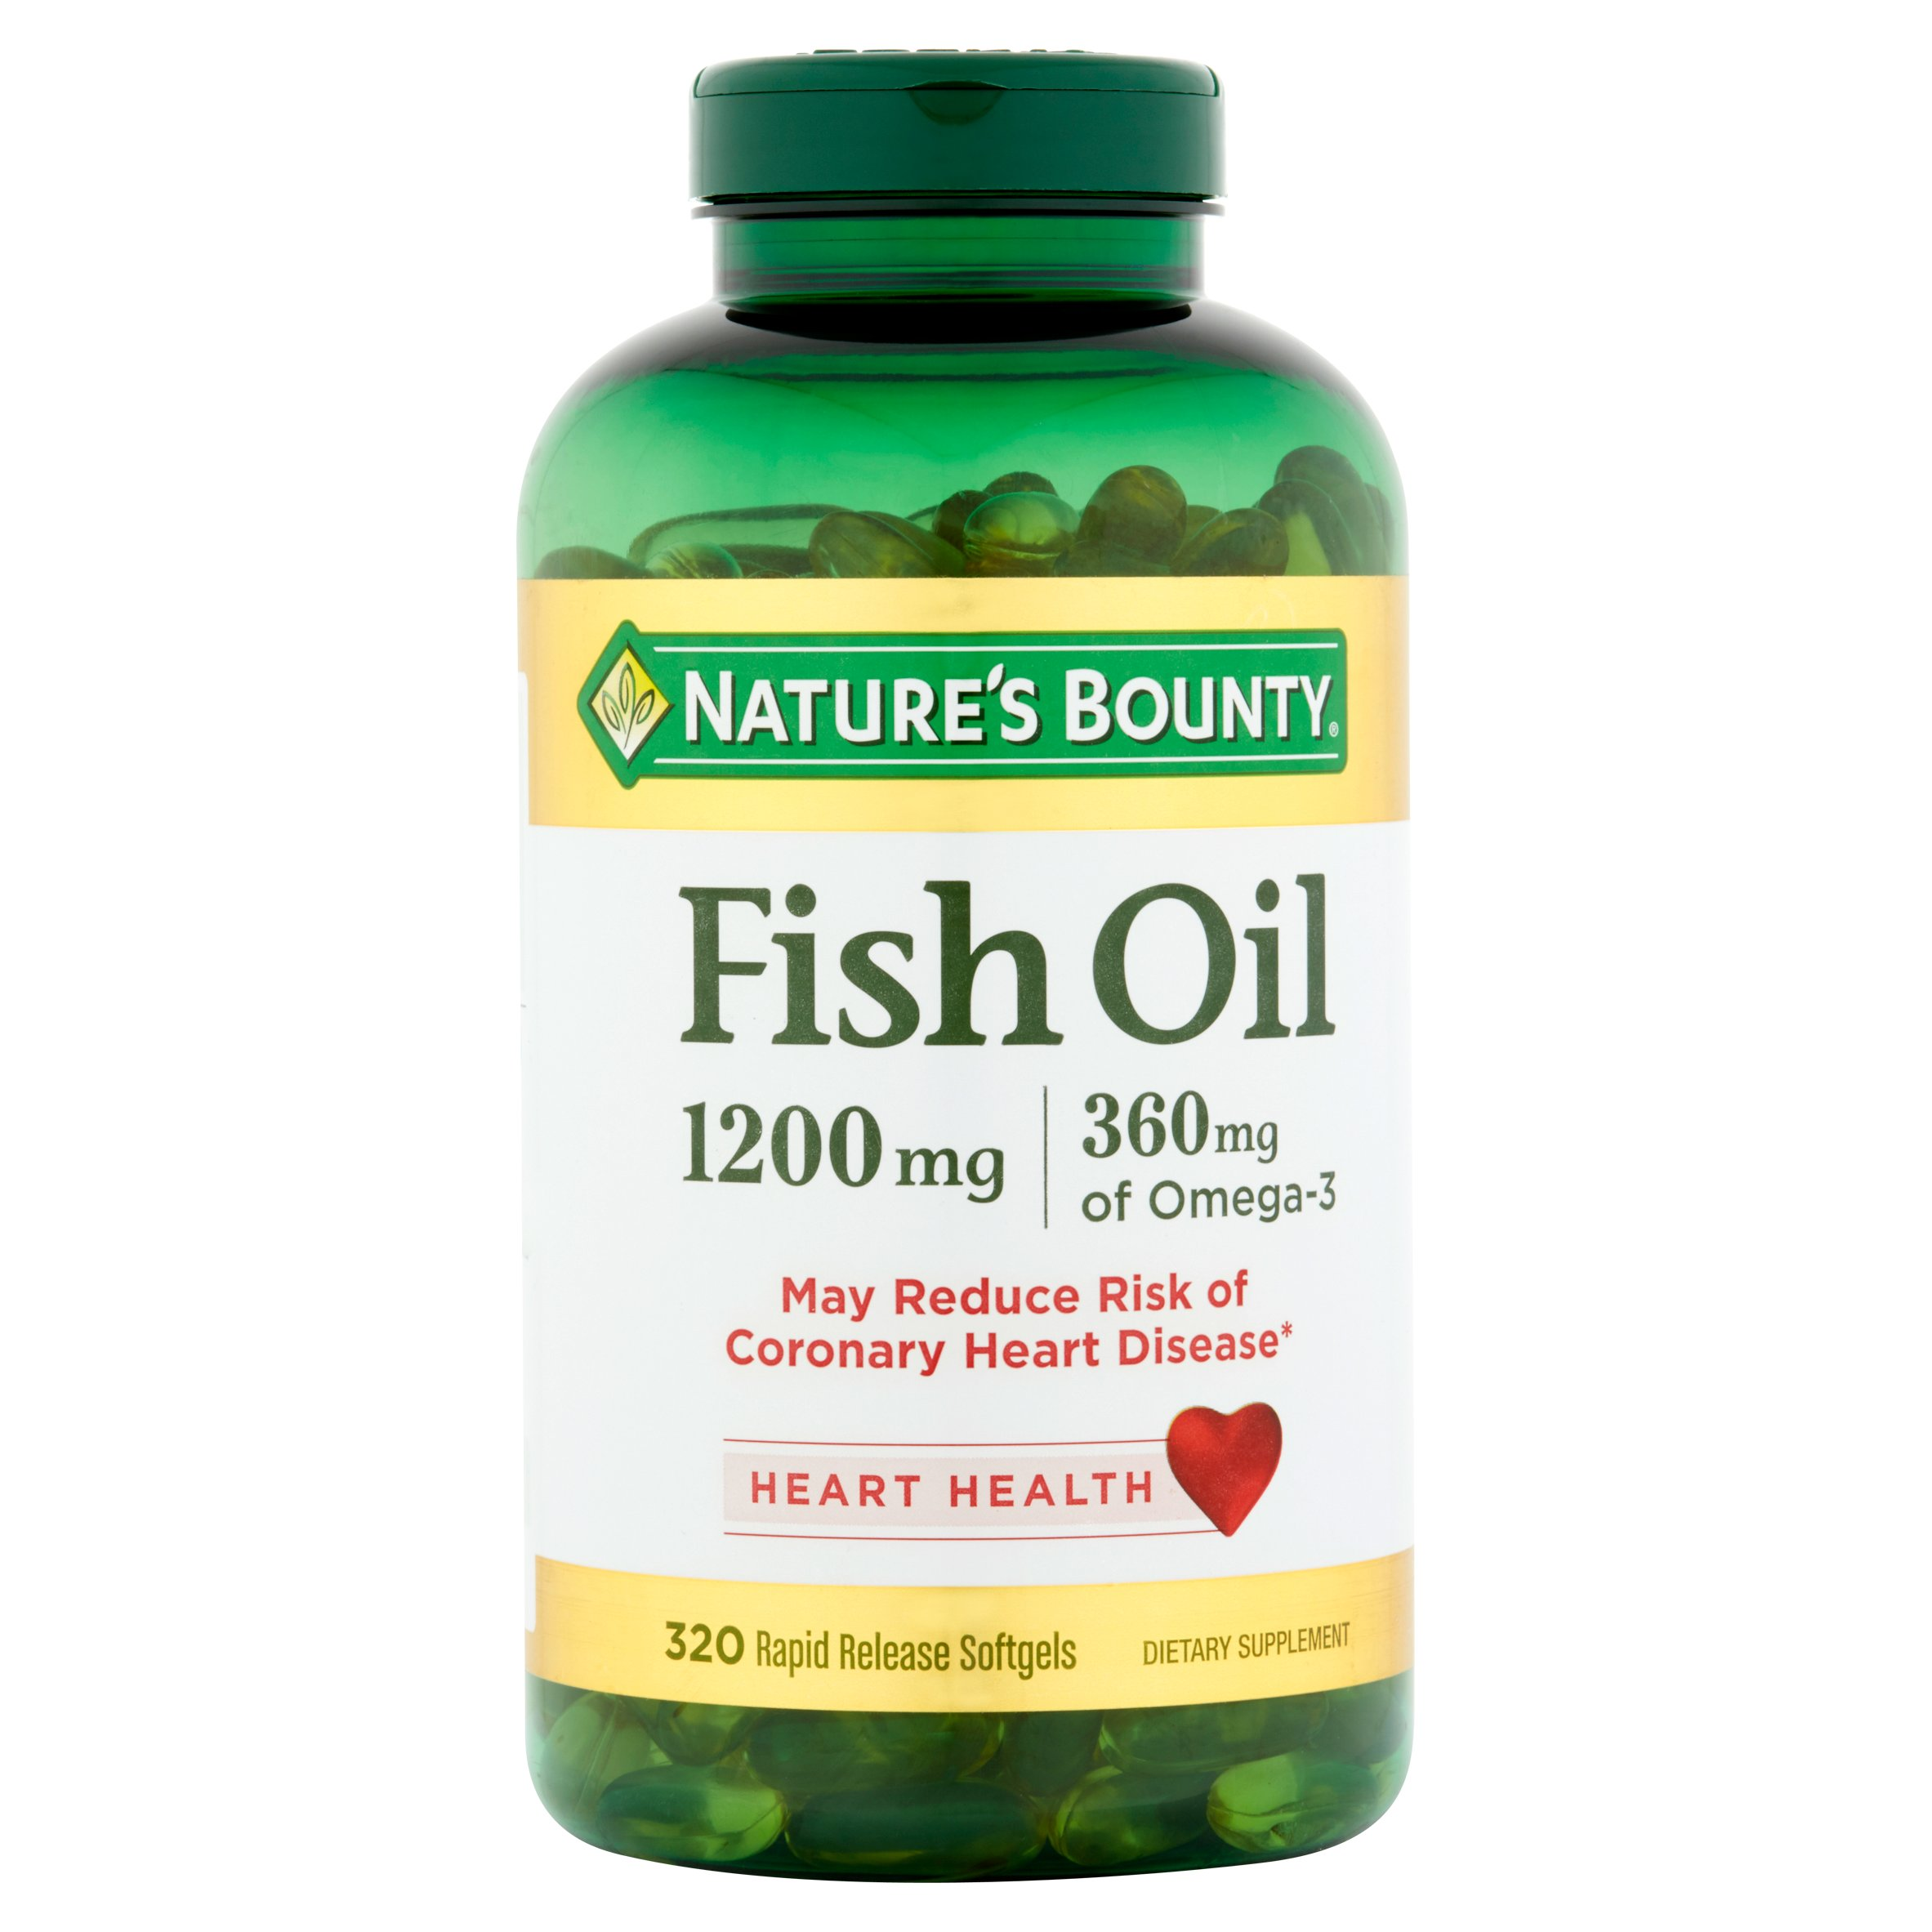 Nature's Bounty Fish Oil Dietary Supplement Softgels, 1200 mg, 320 Ct